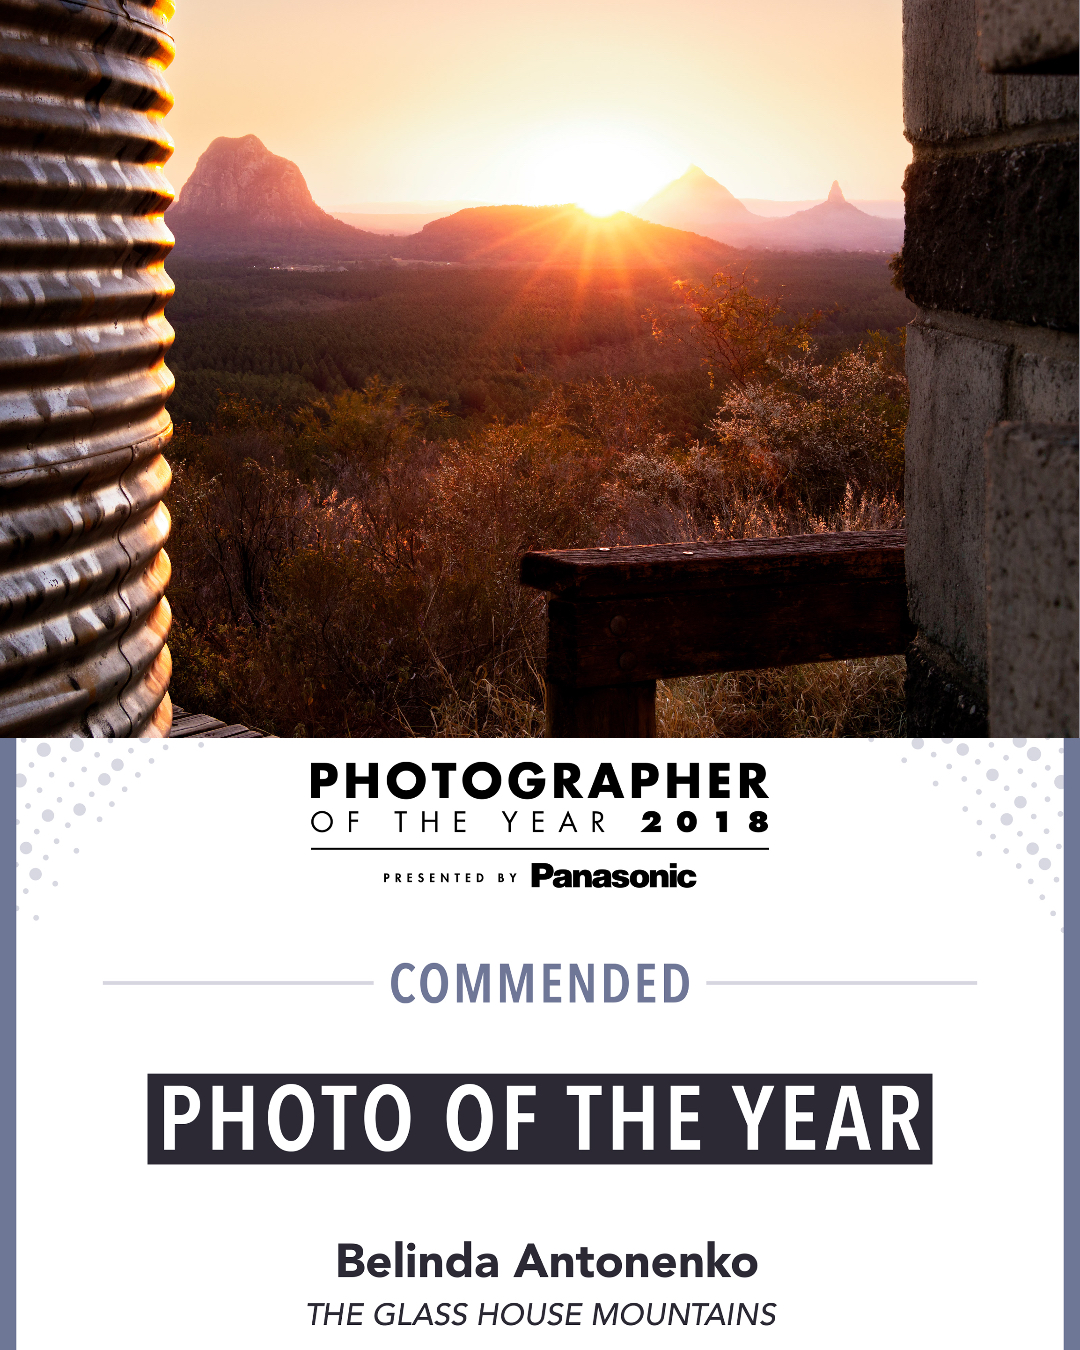 Photographer Of The Year Award - The Glass House Mountains